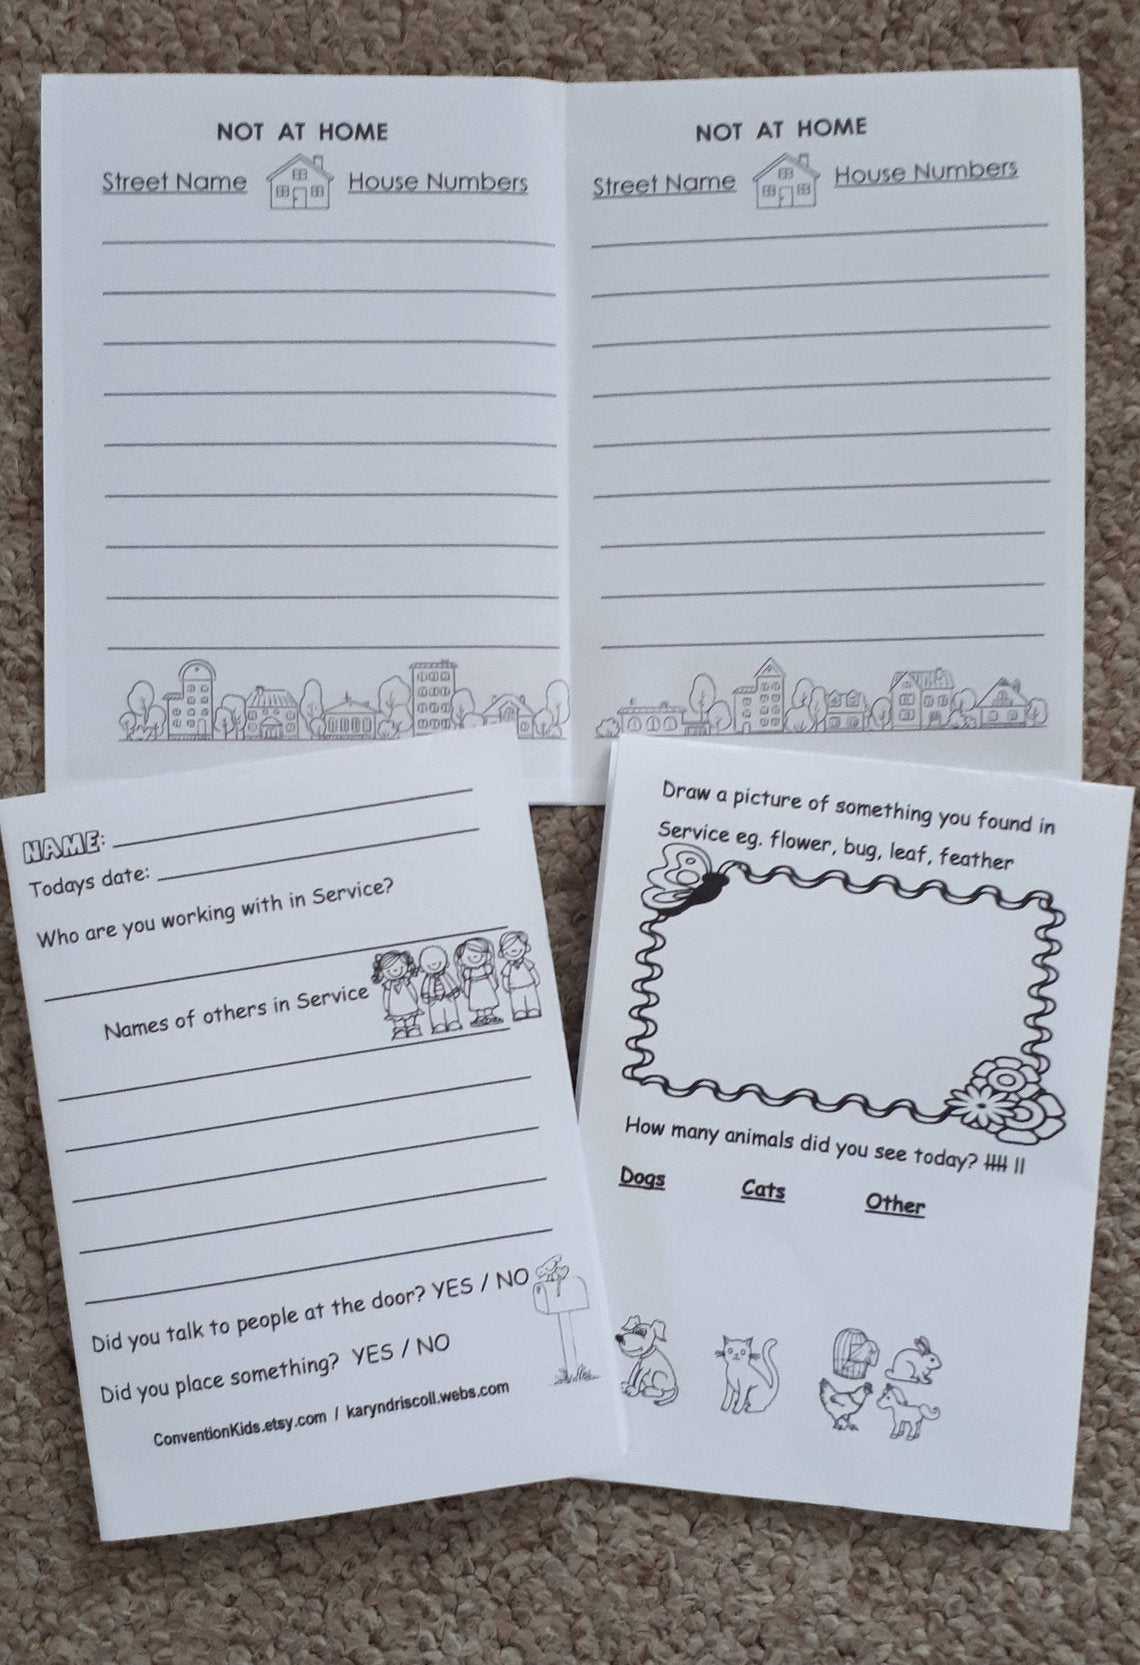 Meeting Worksheet & Service Notes for kids PDF – Convention Kids